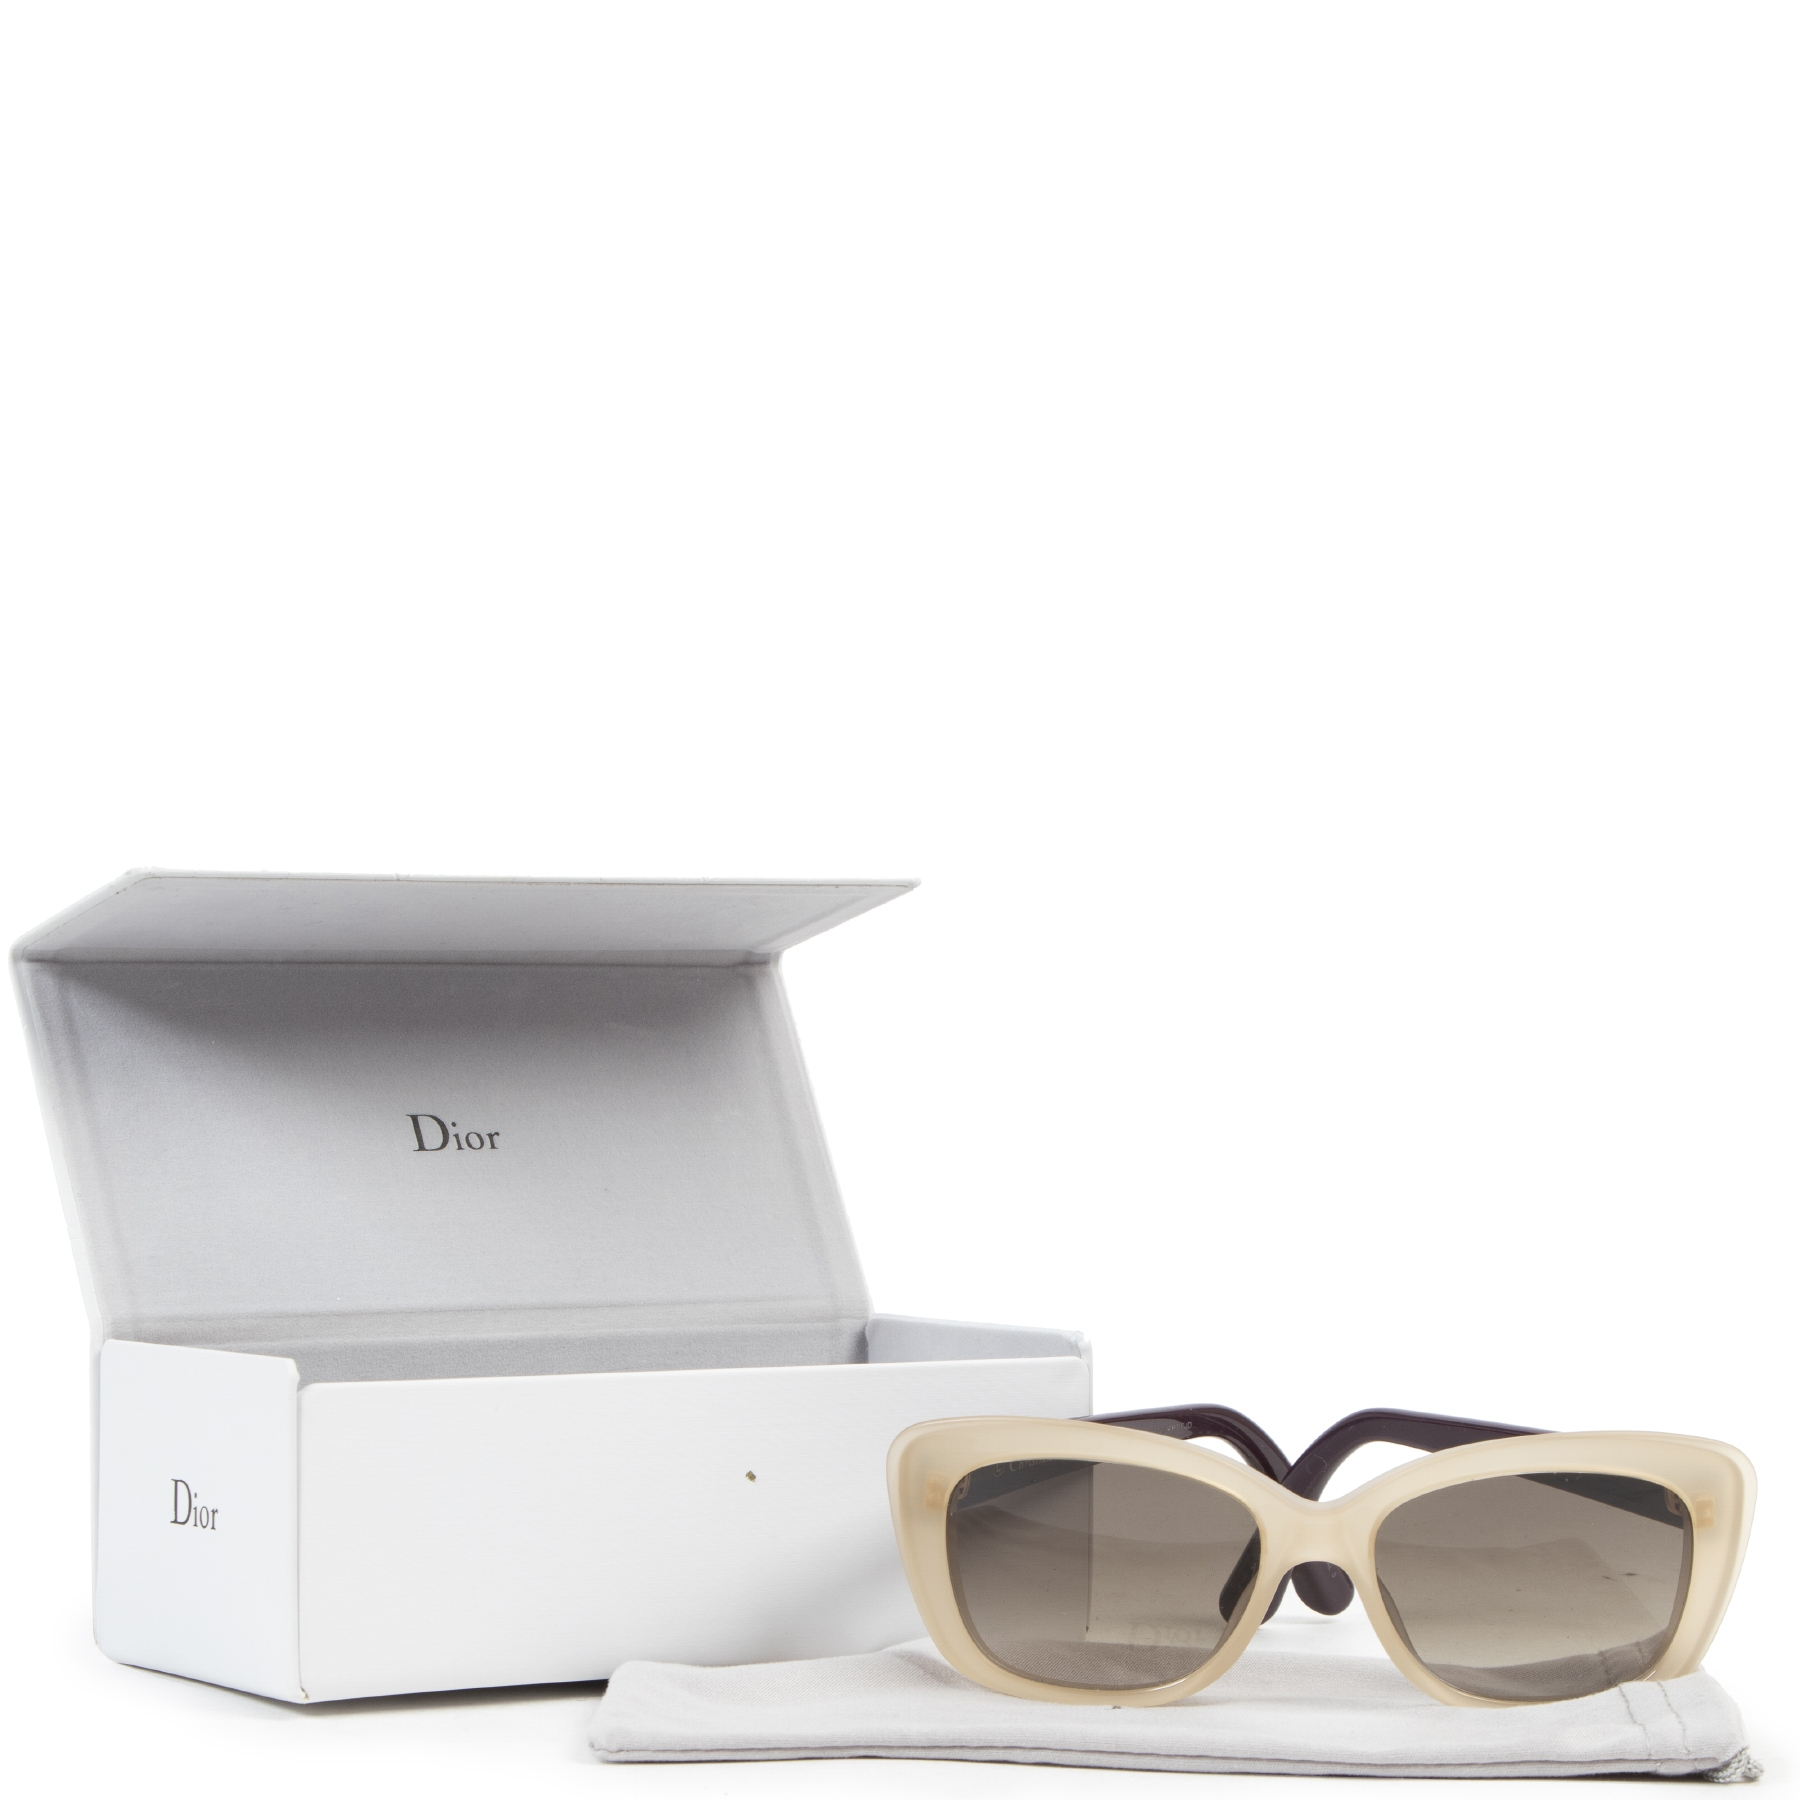 acheter en linge seconde main Christian Dior Promesse Sunglasses